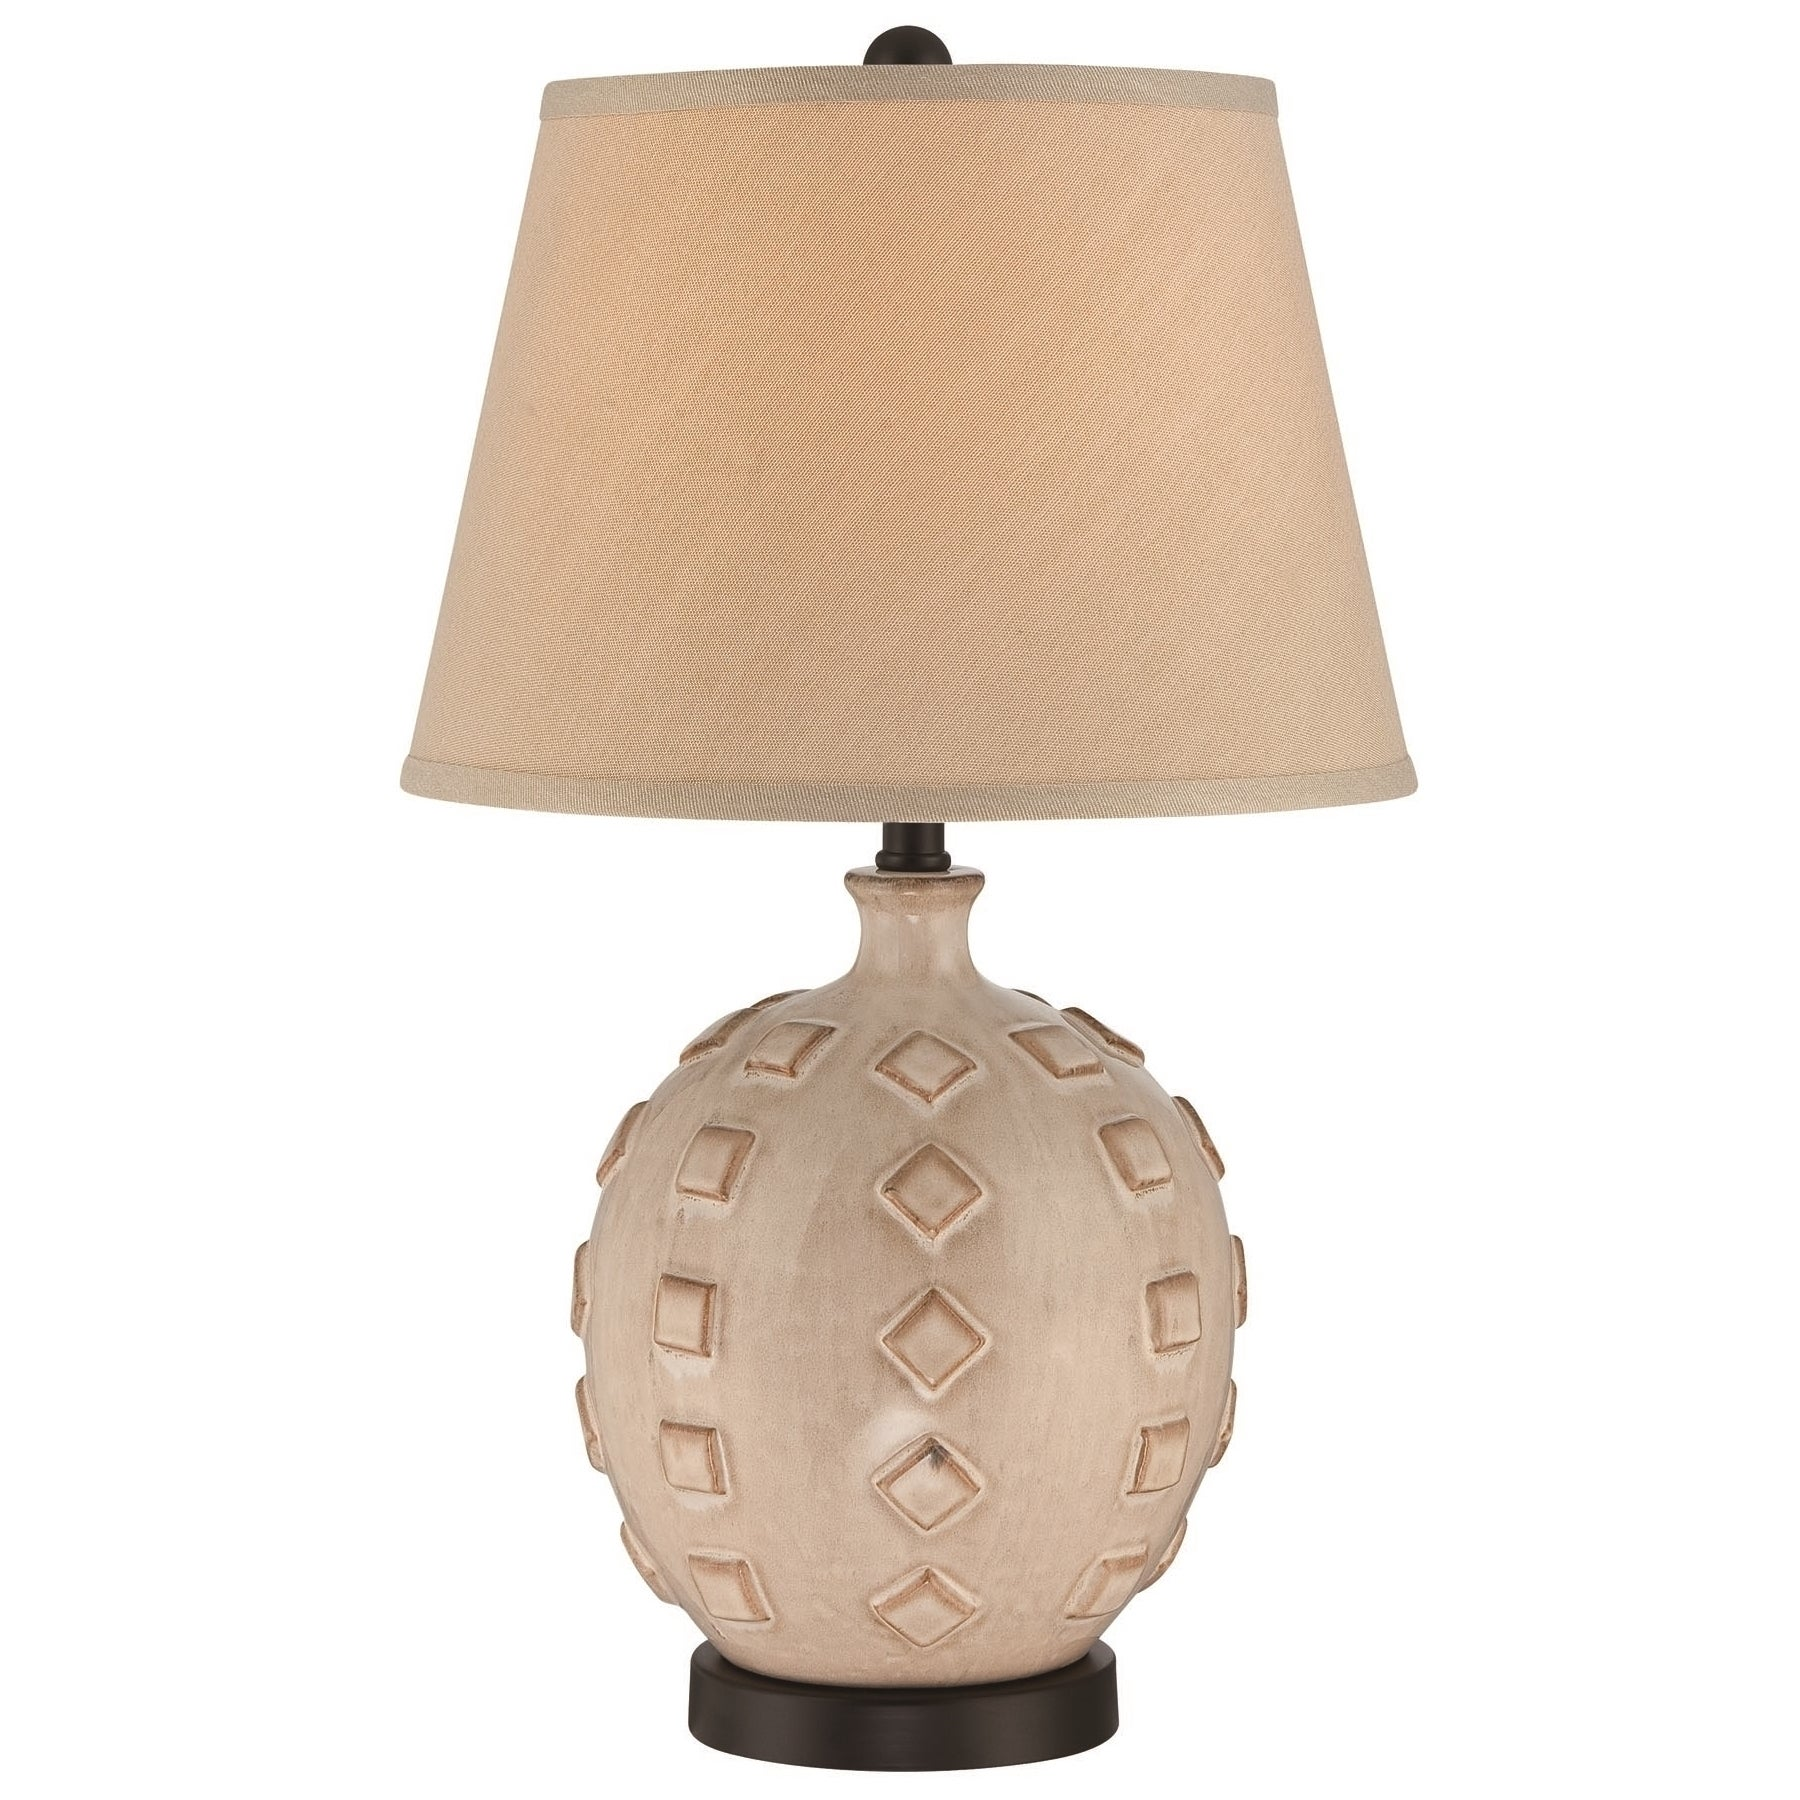 Lite Source Fenmore Table Lamp Overstock 10196018